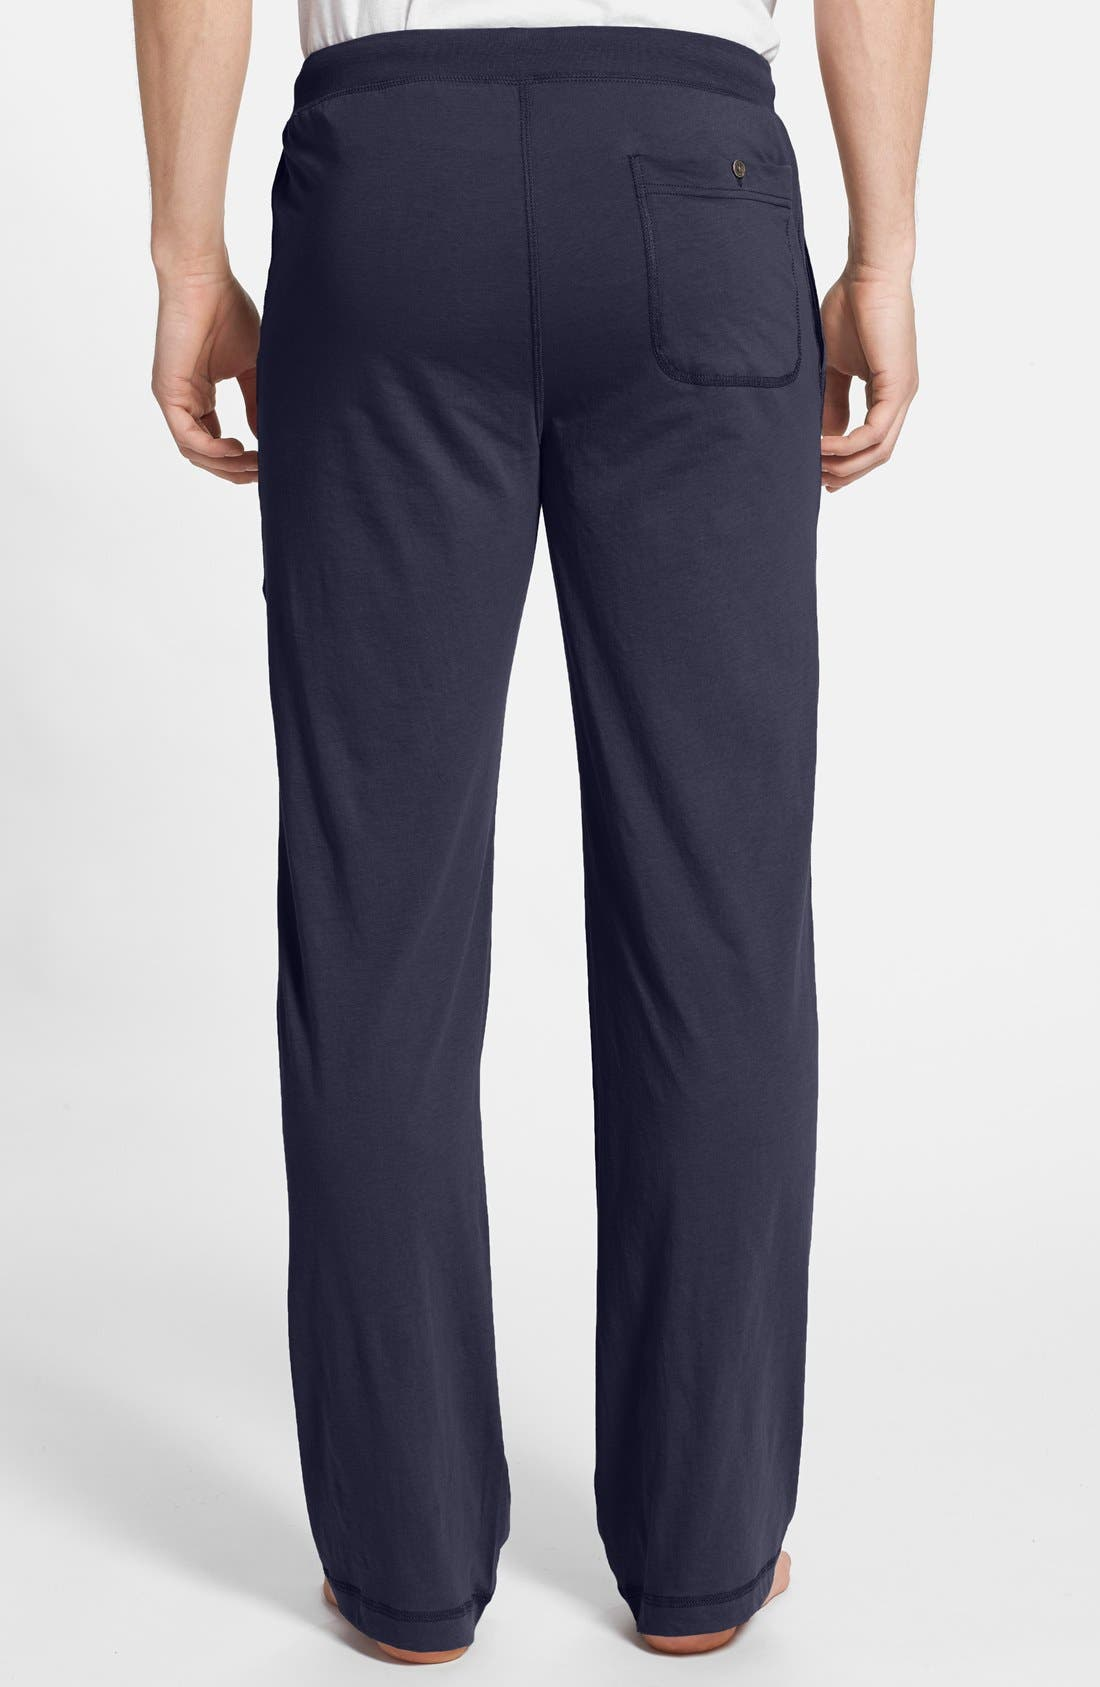 Alternate Image 2  - Daniel Buchler Peruvian Pima Lightweight Cotton Lounge Pants